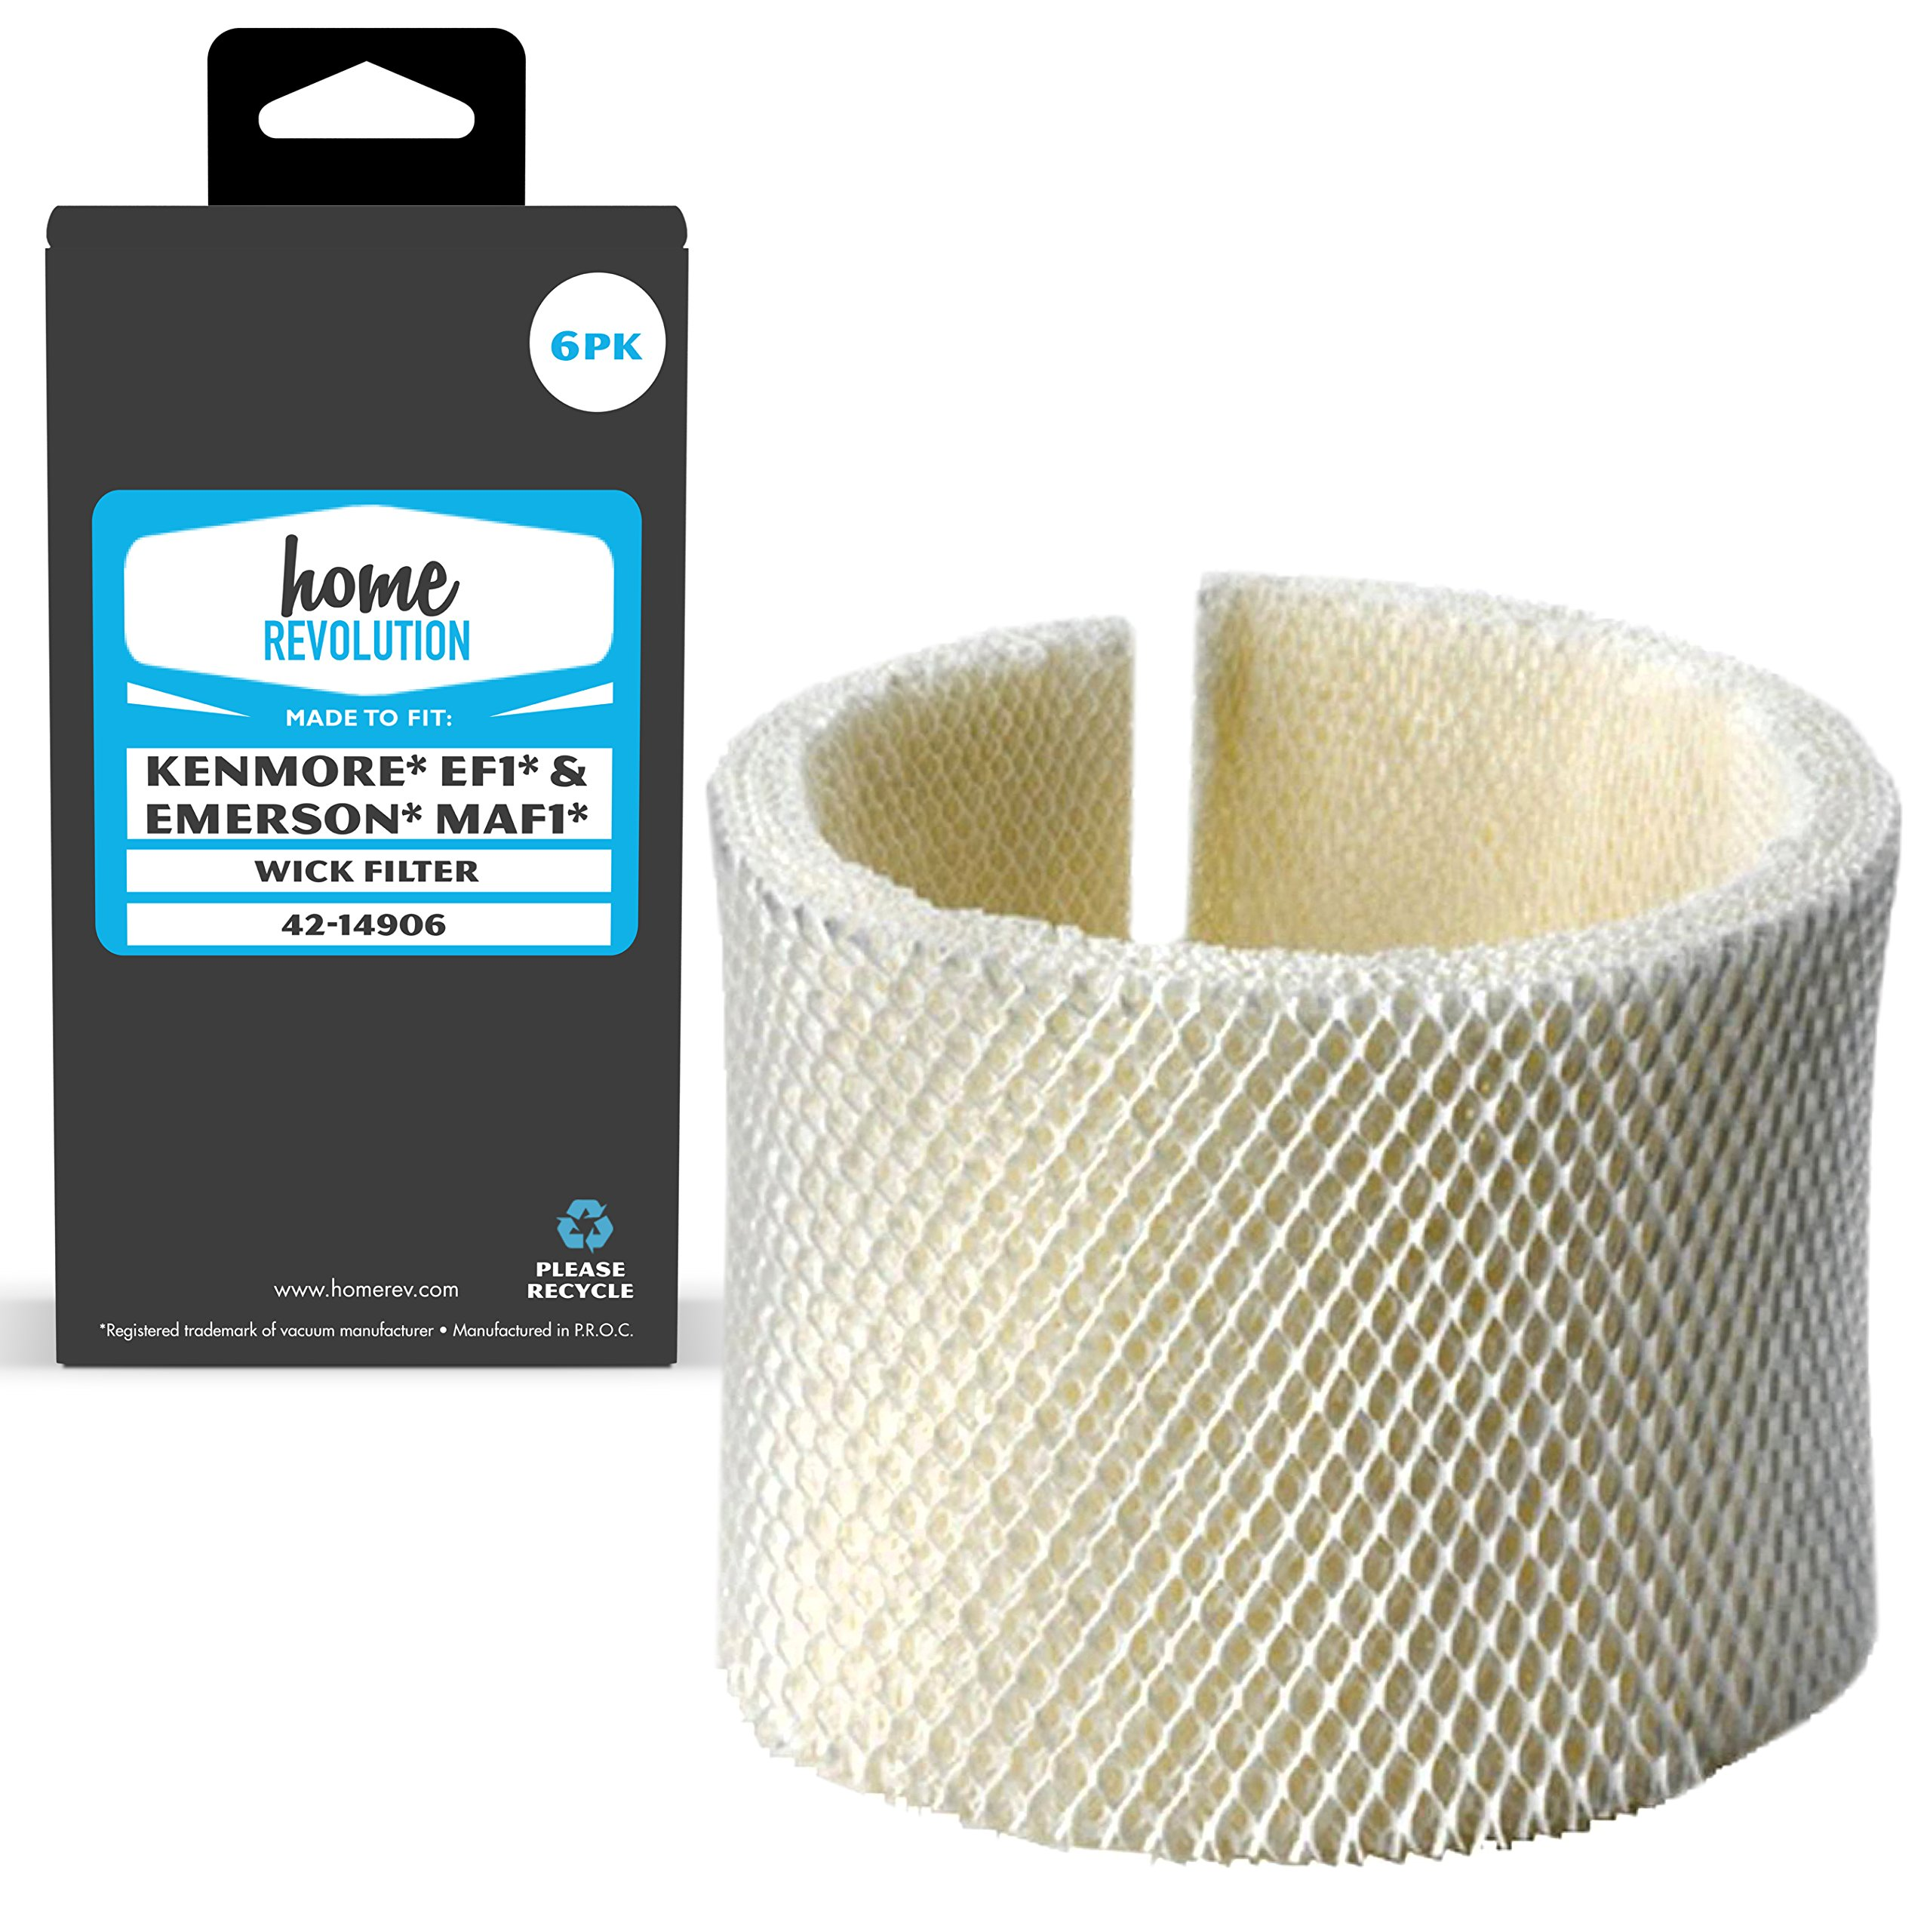 Home Revolution 6 Replacement Humidifier Filters, Fits Kenmore and Emerson Humidifier Models and Parts 42-14906 and MAF1 by Home Revolution